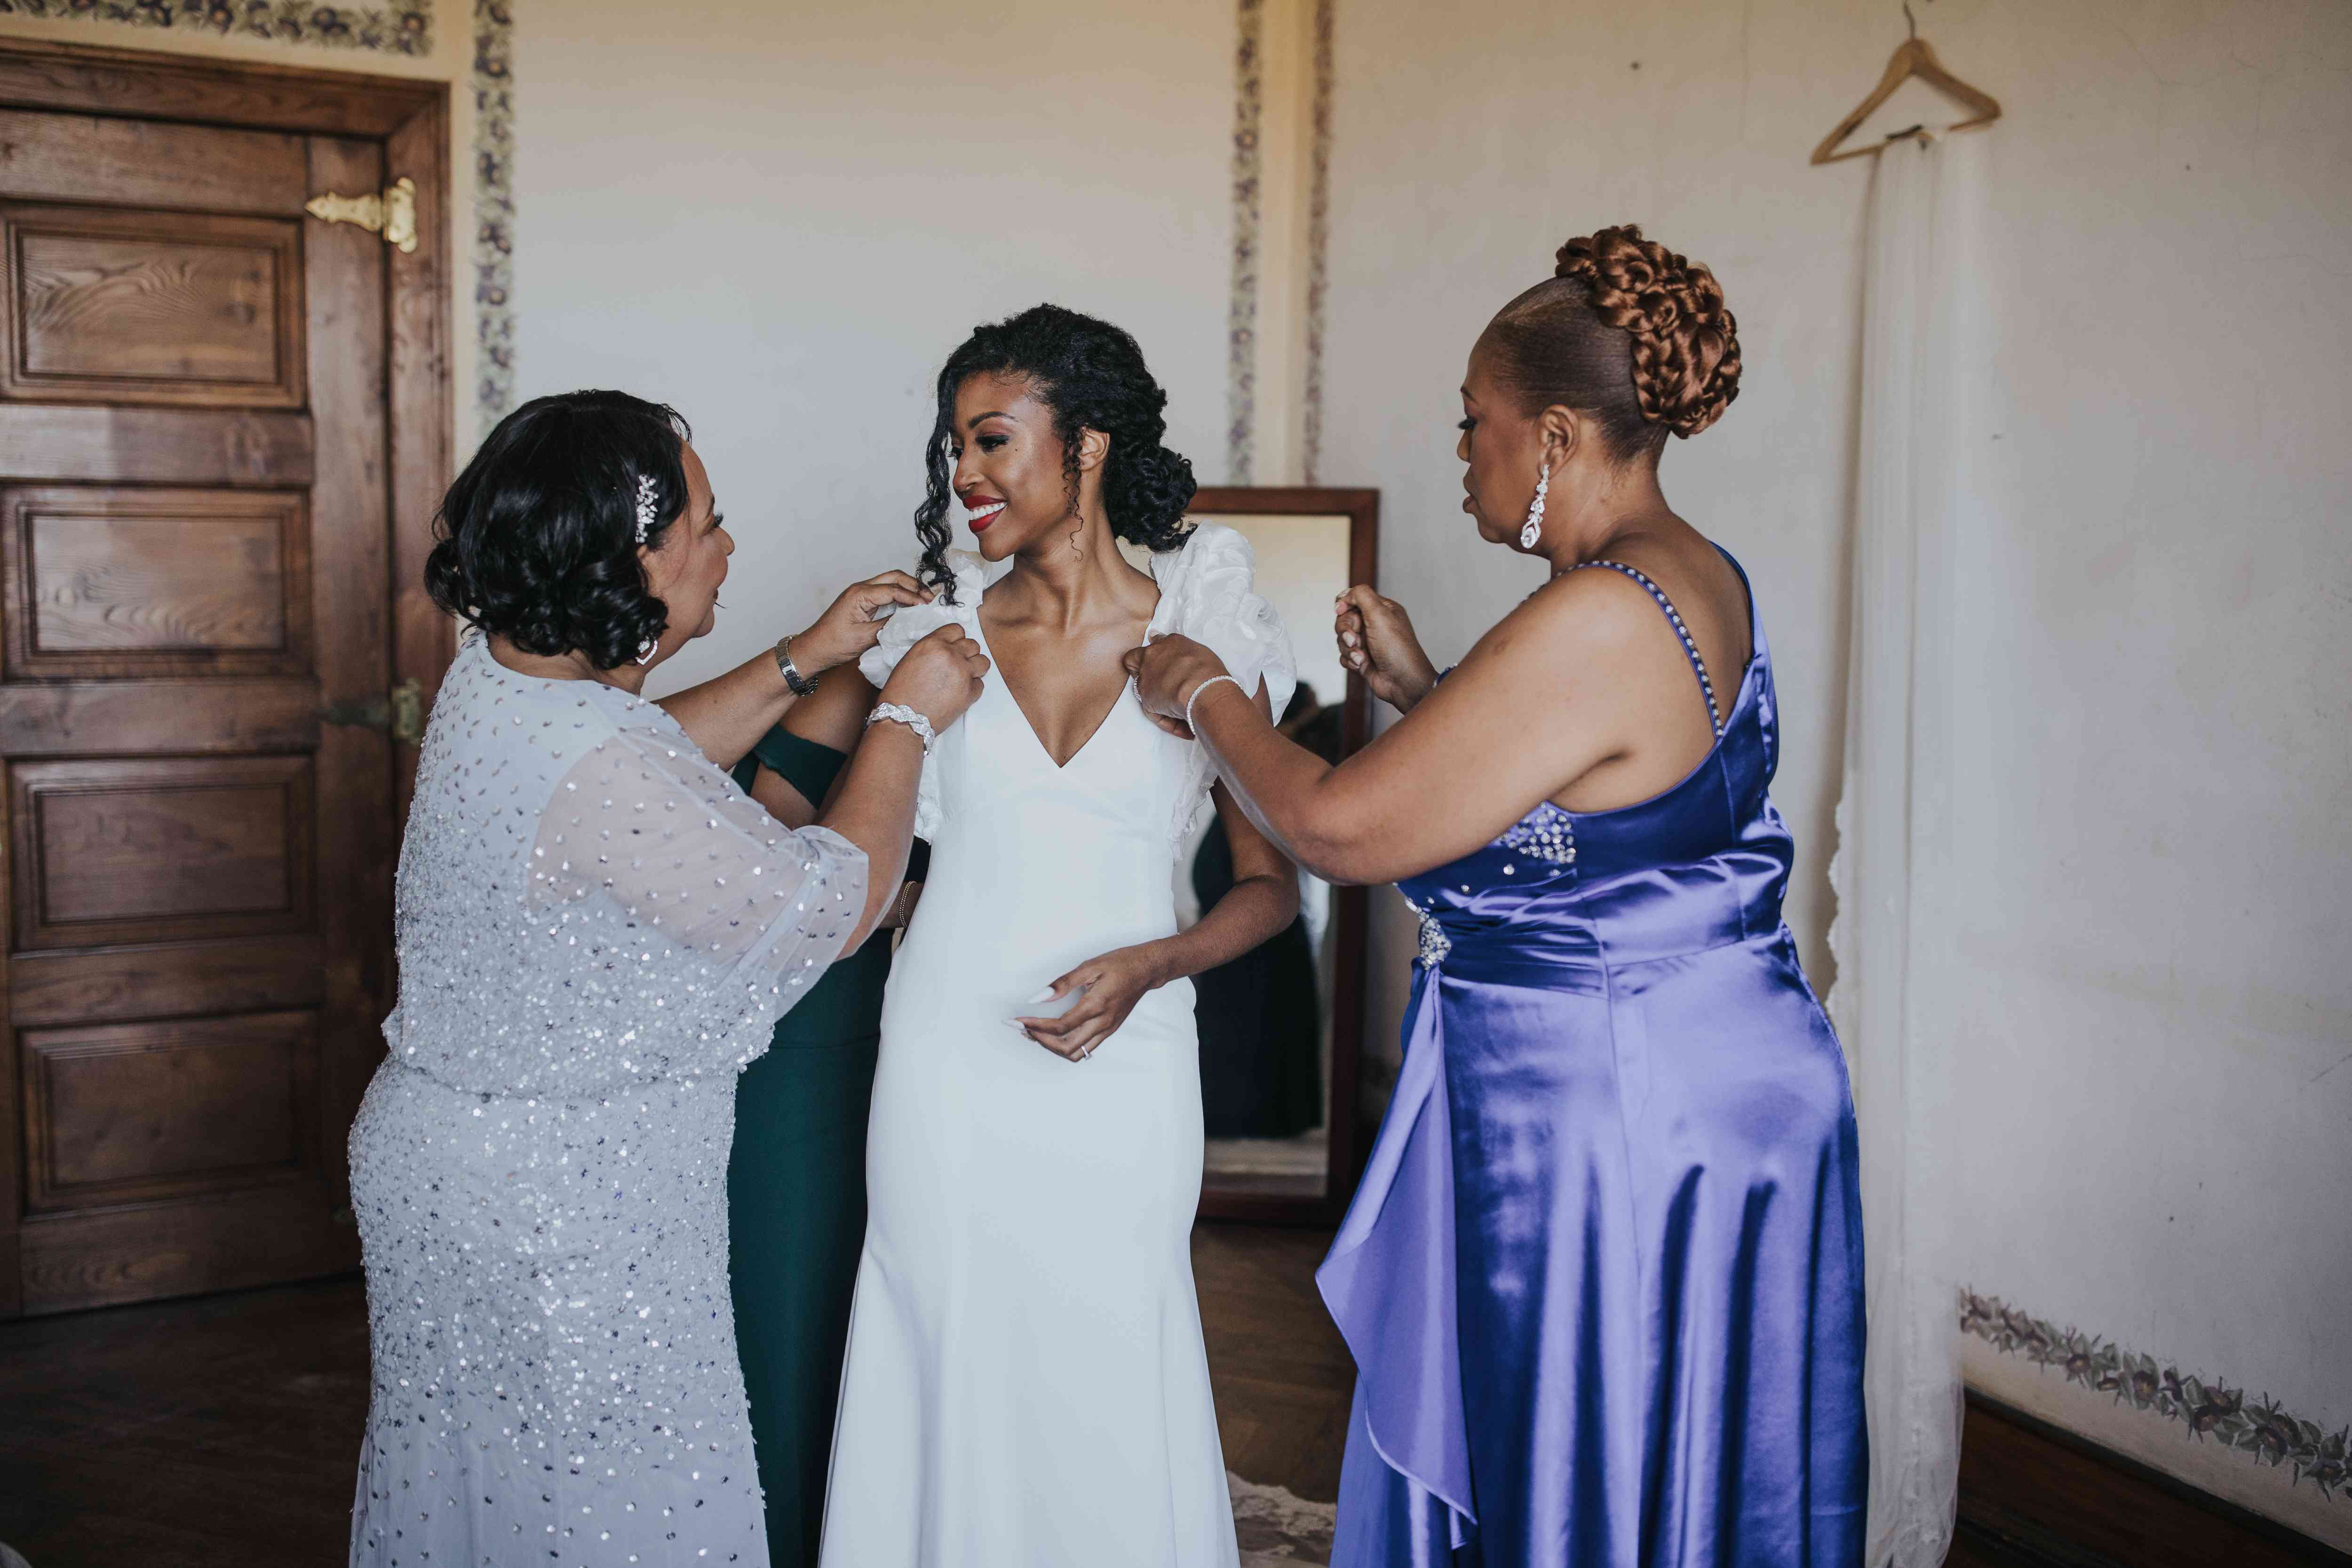 Family helping the bride put on her dress